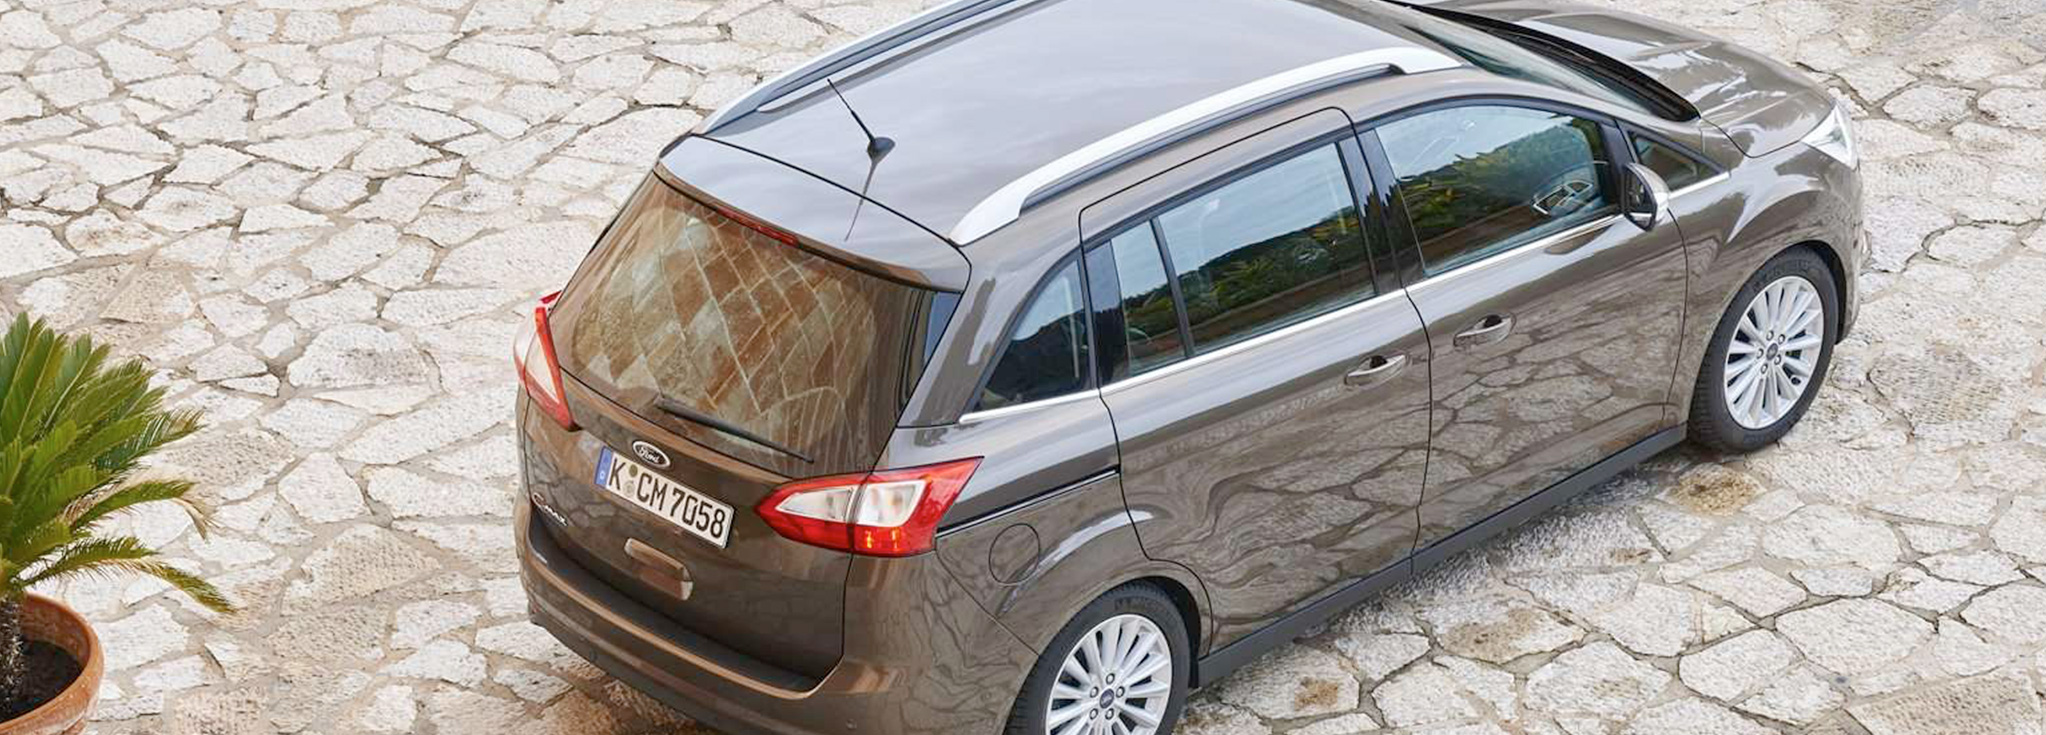 Ford Grand C-Max desde arriba